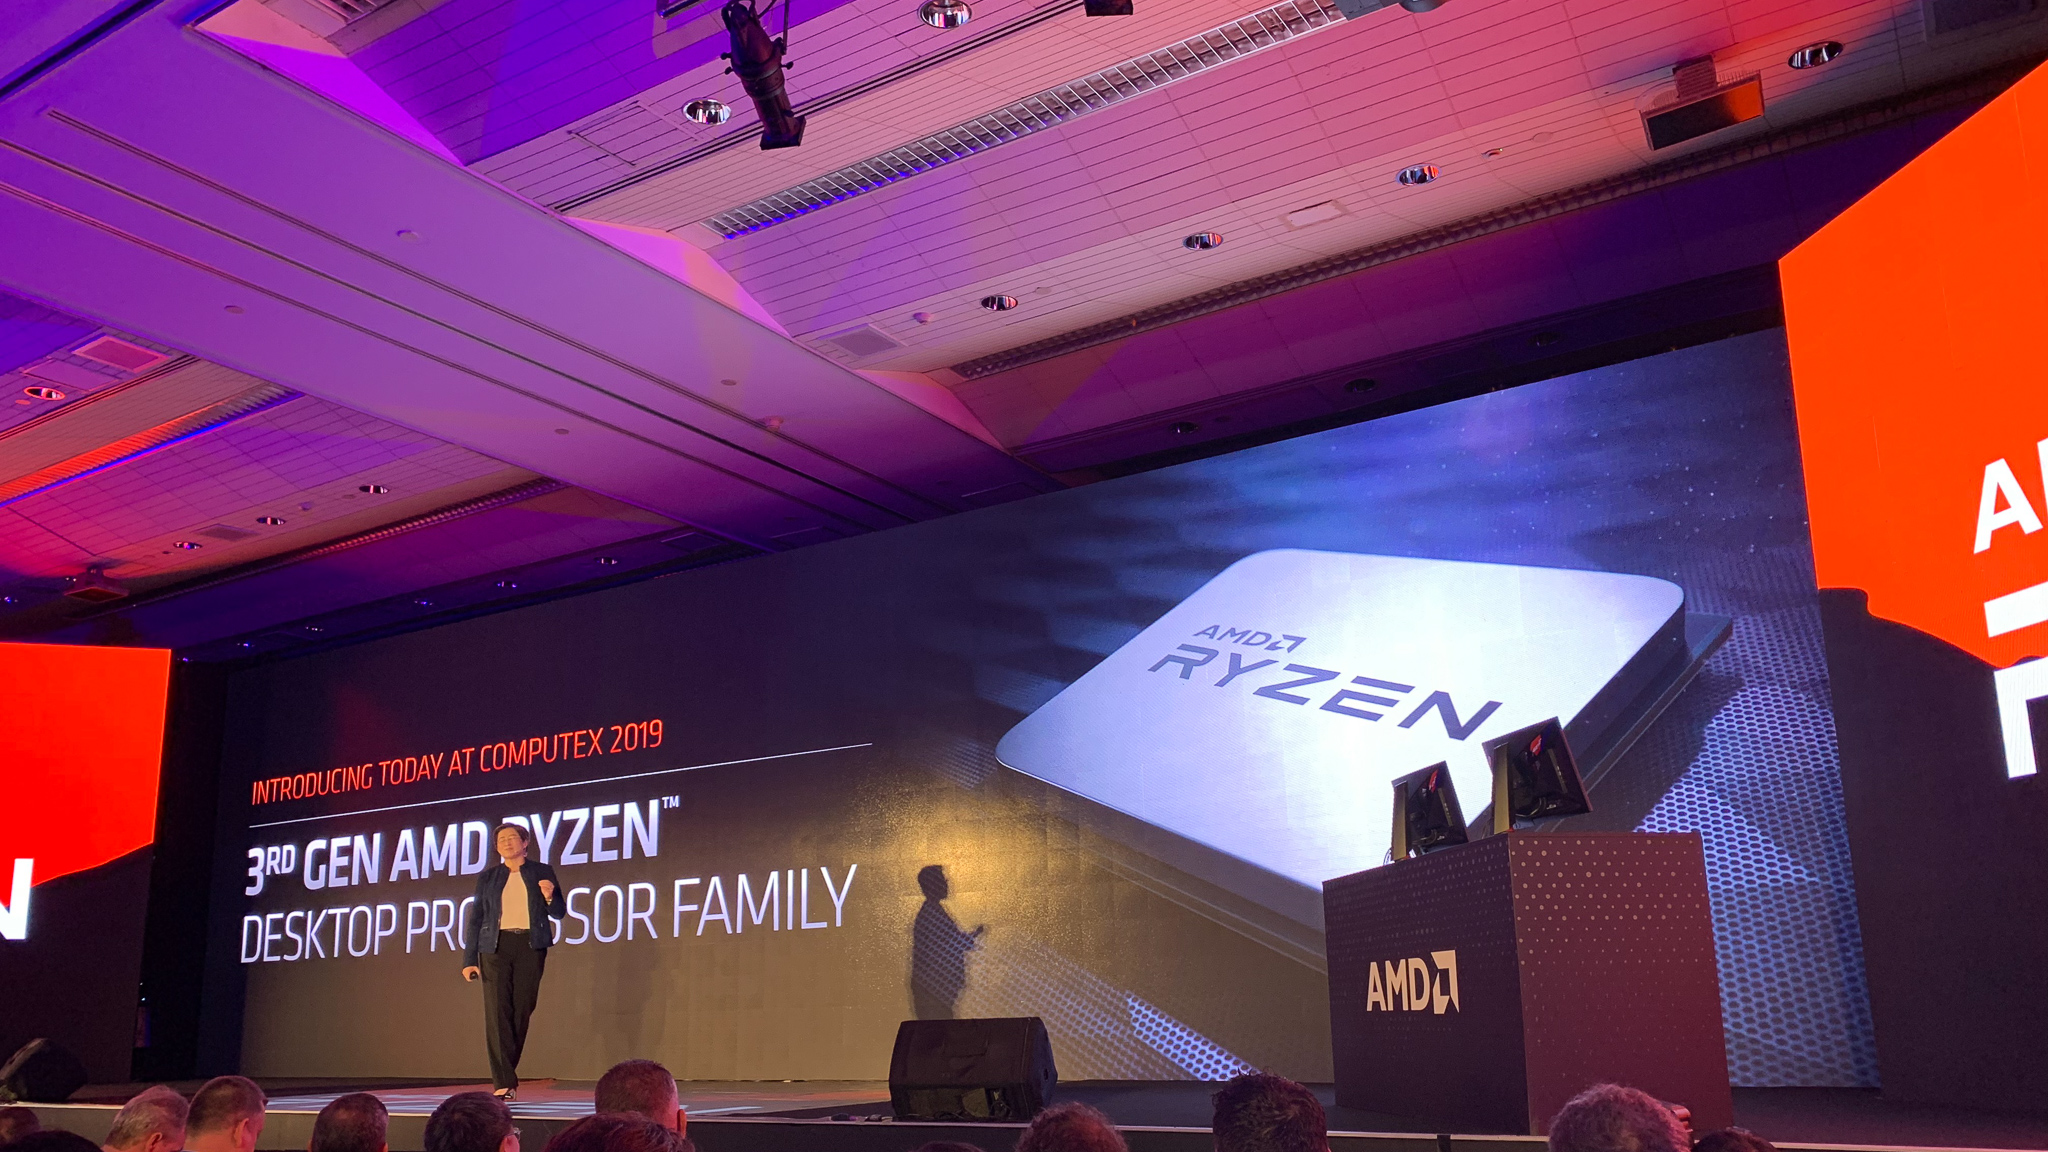 AMD presenting the AMD Ryzen 3rd Generation at CES 2019